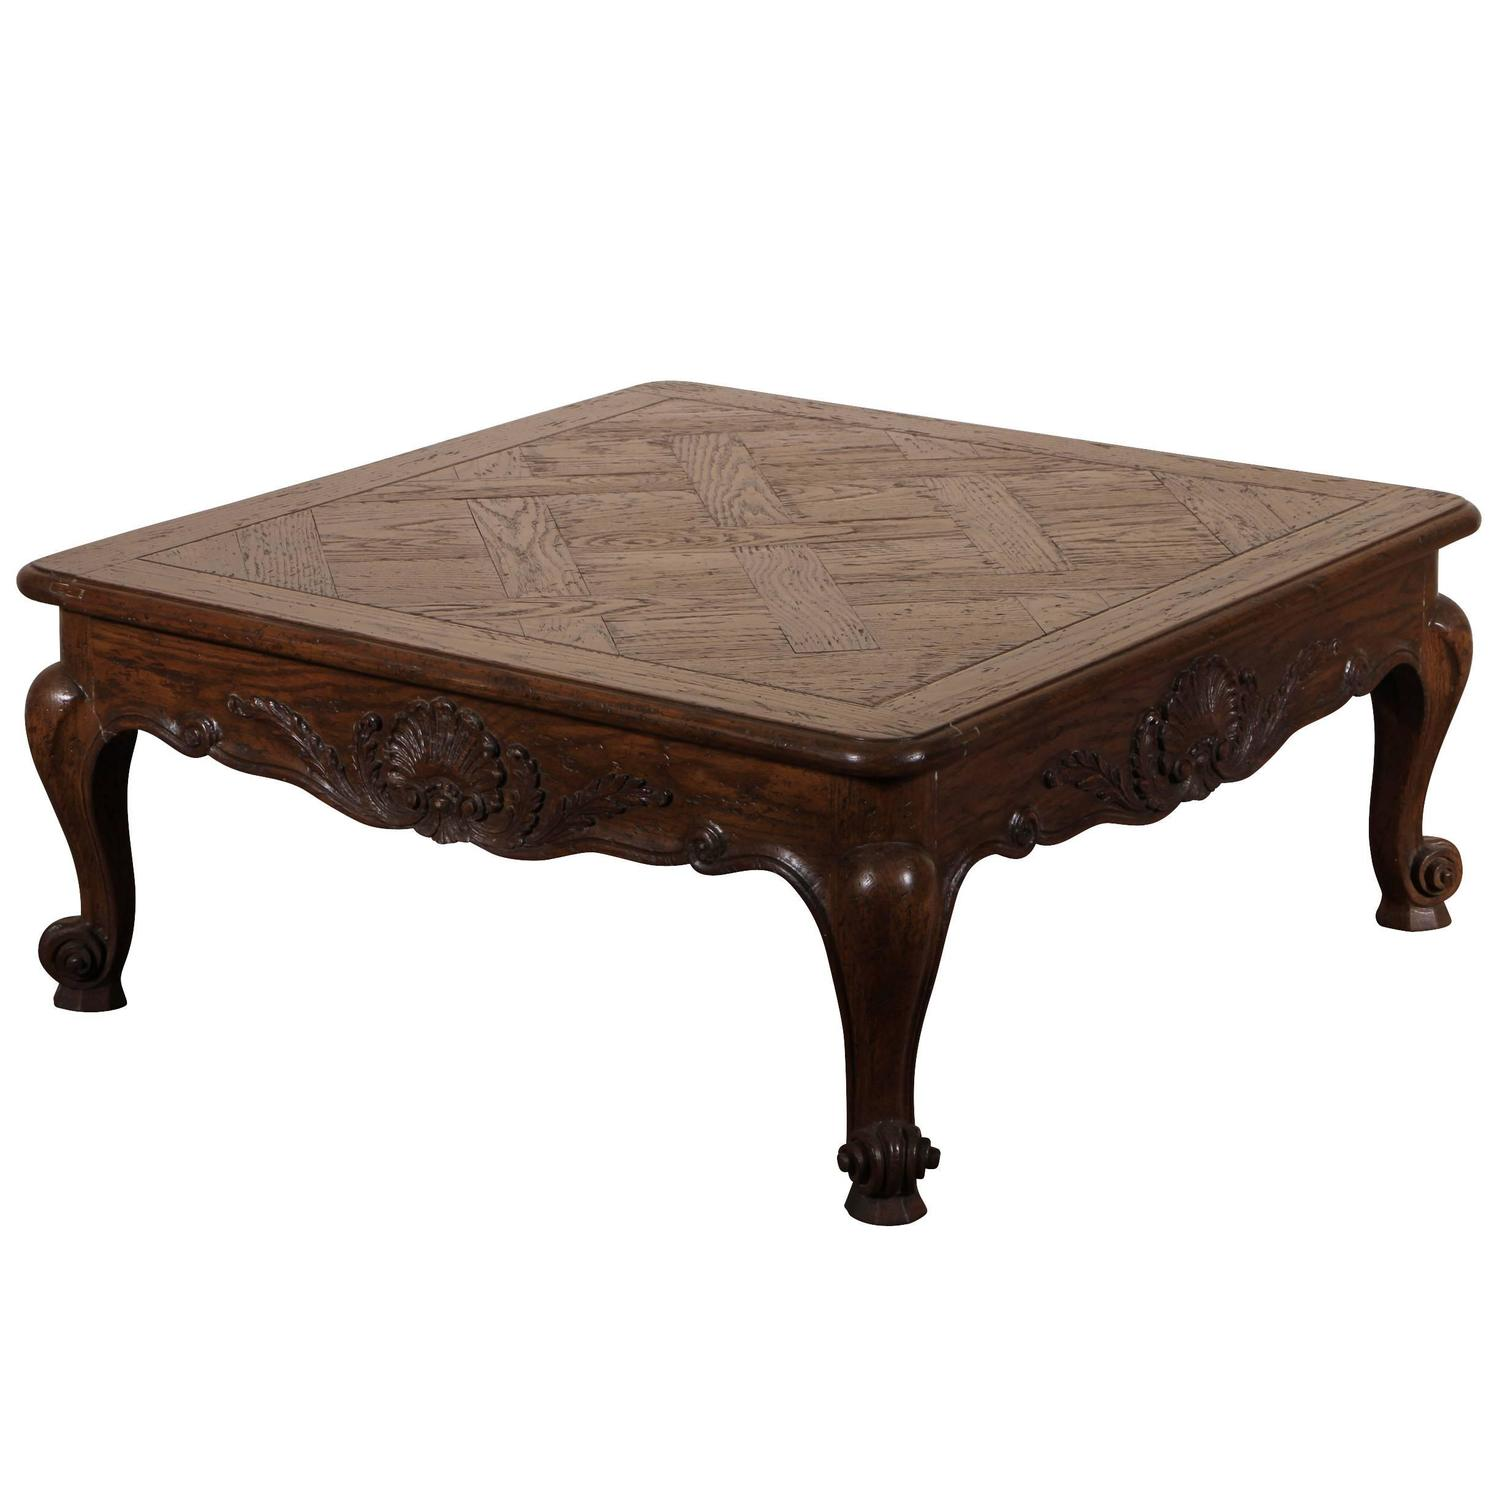 French Parquetry Coffee Table: Country French Parquetry Cocktail Table By Auffray At 1stdibs